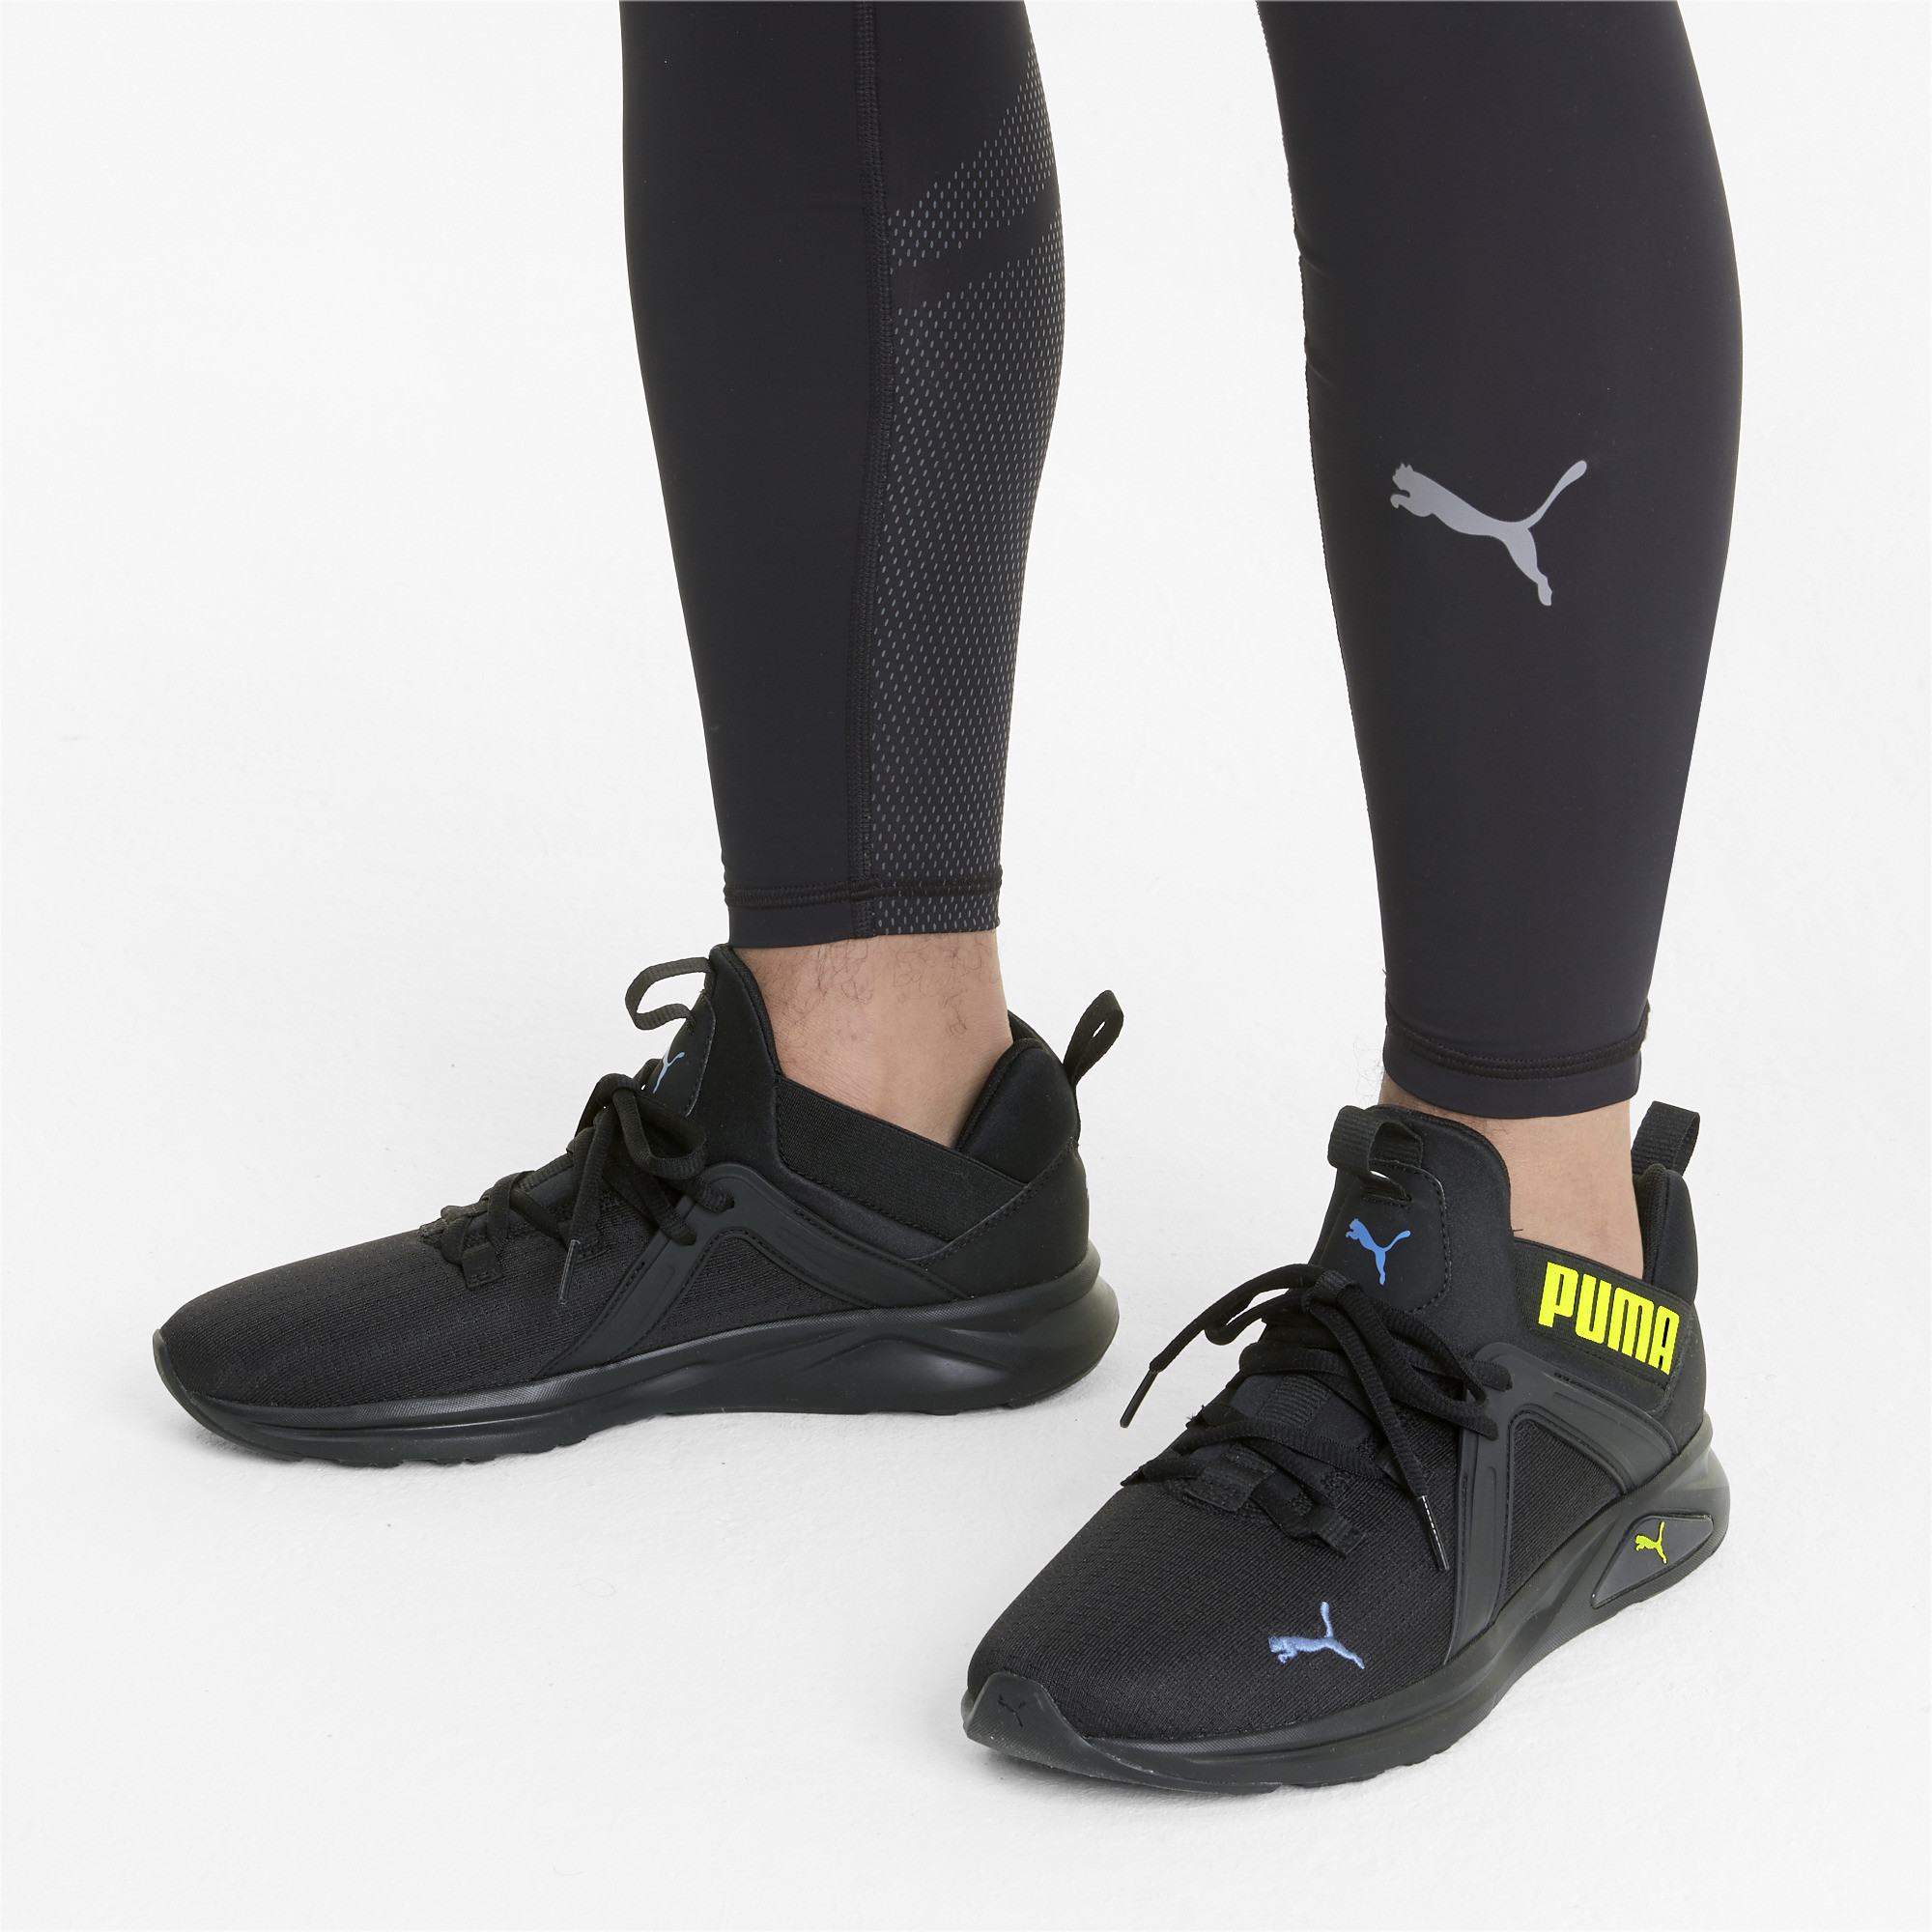 Details about PUMA Men's Enzo 2 Eco Running Shoes